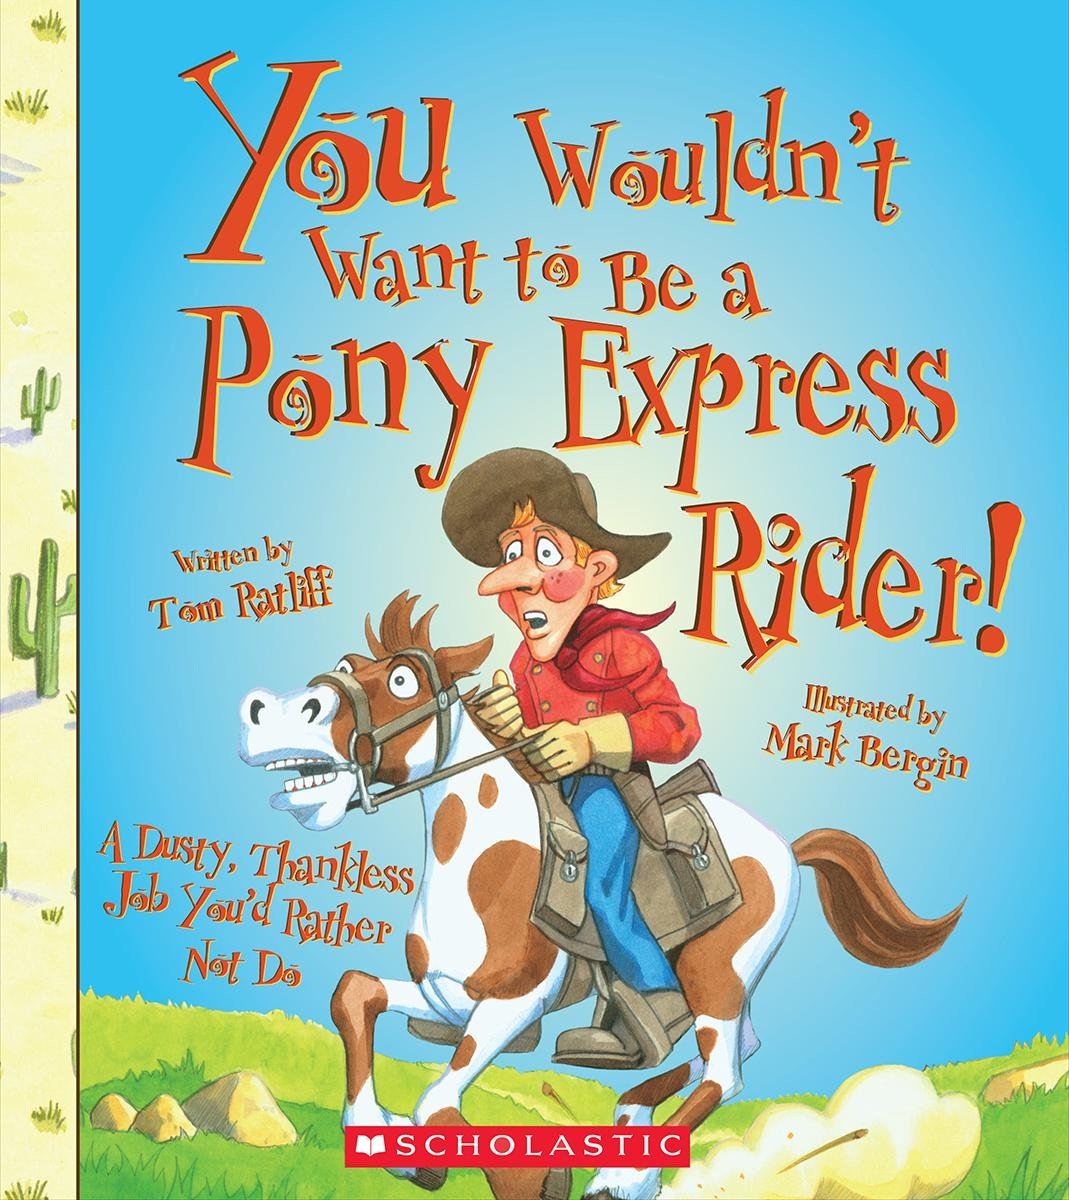 You Wouldn't Want to Be a Pony Express Rider!: A Dusty, Thankless Job You'd  Rather Not Do: Ratliff, Thomas, Bergin, Mark: 9780531209479: Books -  Amazon.ca